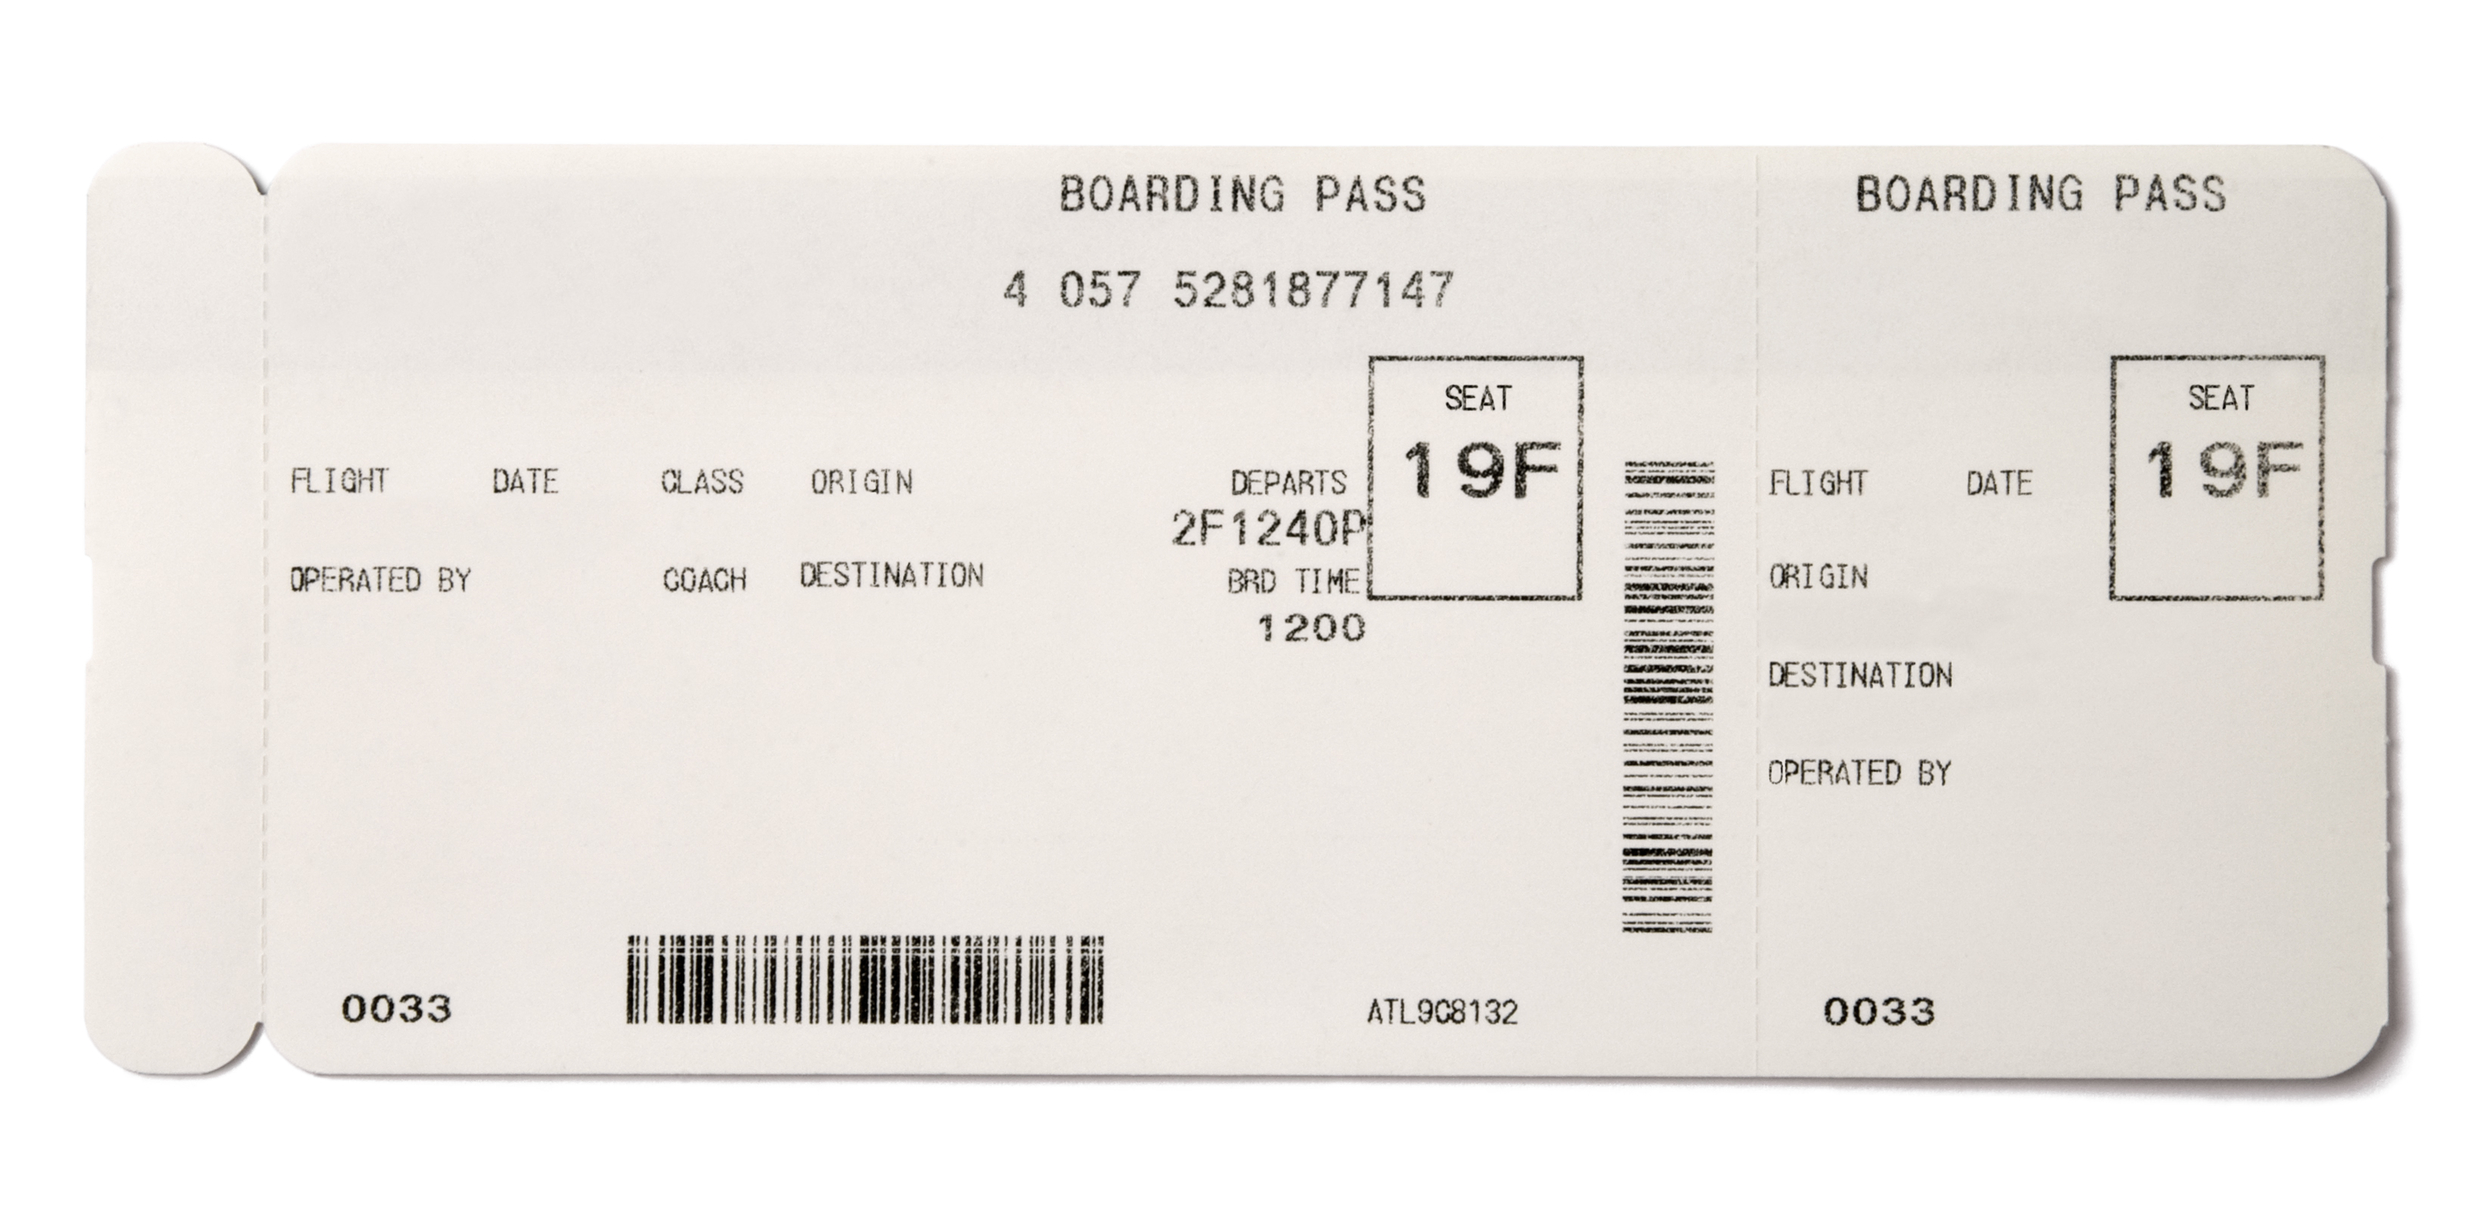 Making Fake Boarding Passes As Gifts